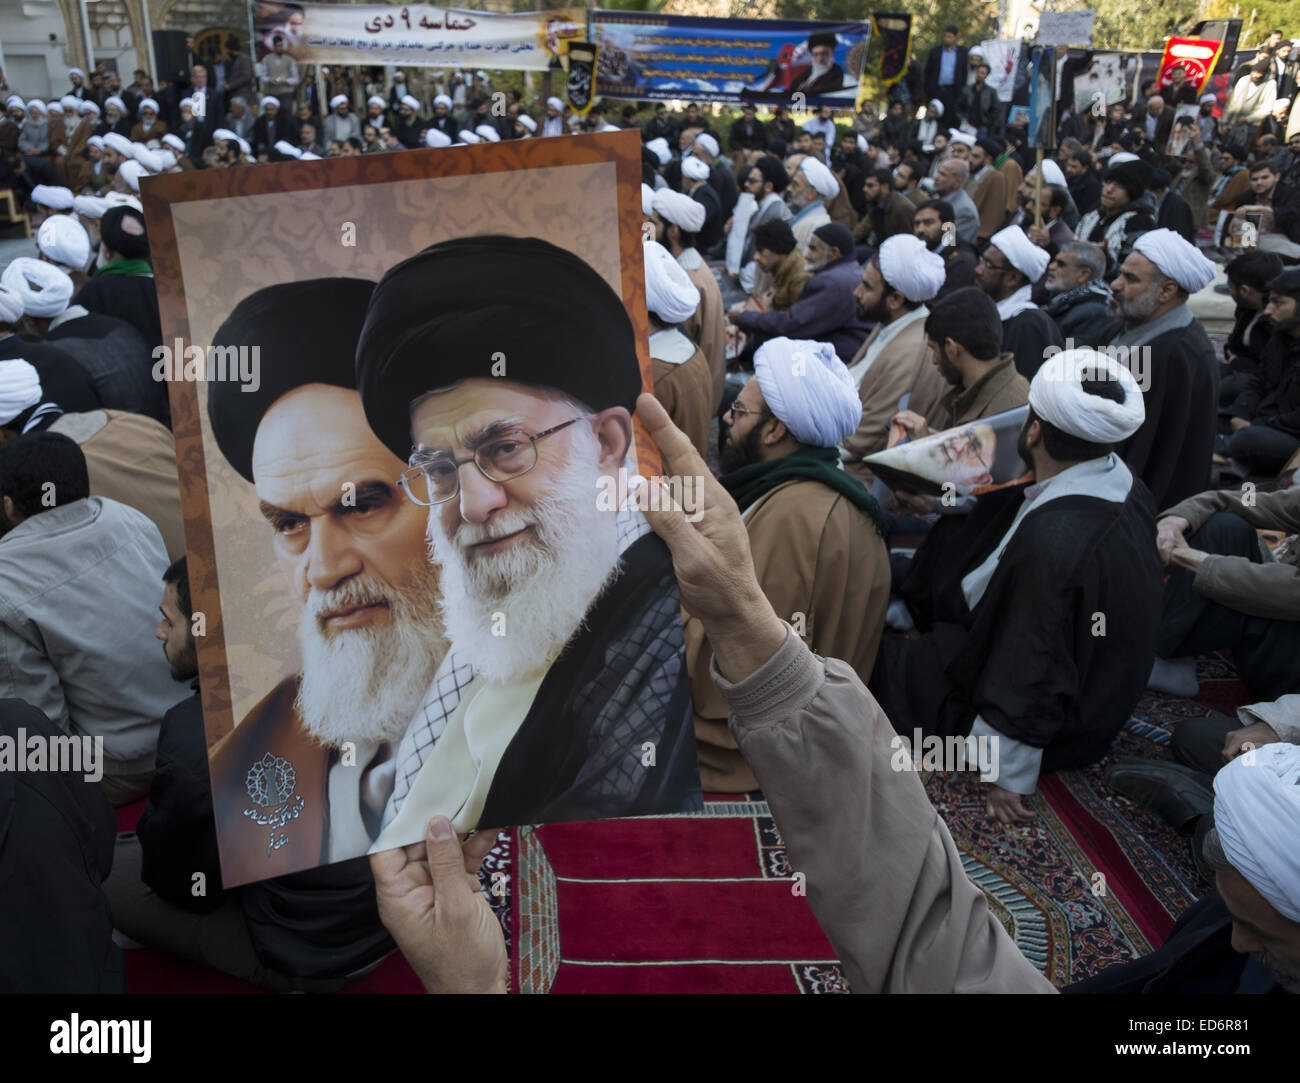 Qom, Iran. 29th Dec, 2014. December 30, 2014 - Qom, Iran - An Iranian man holds-up a poster with portraits of Iran's - Stock Image